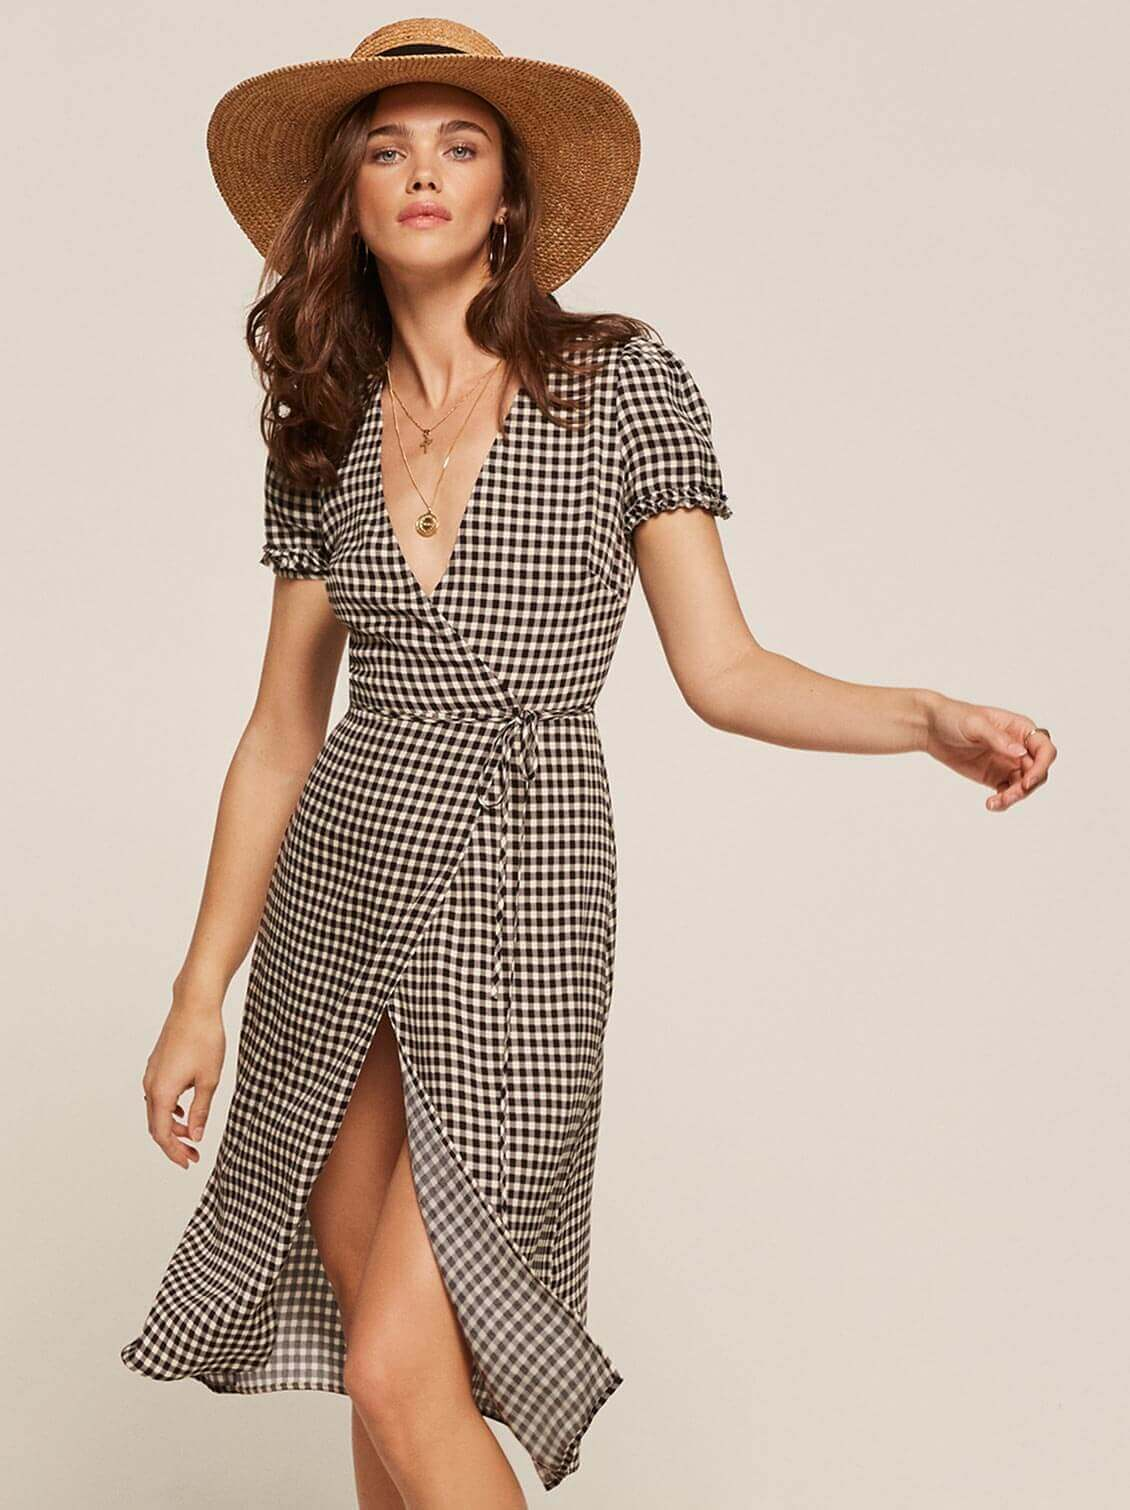 Reformation picnic dress and hat